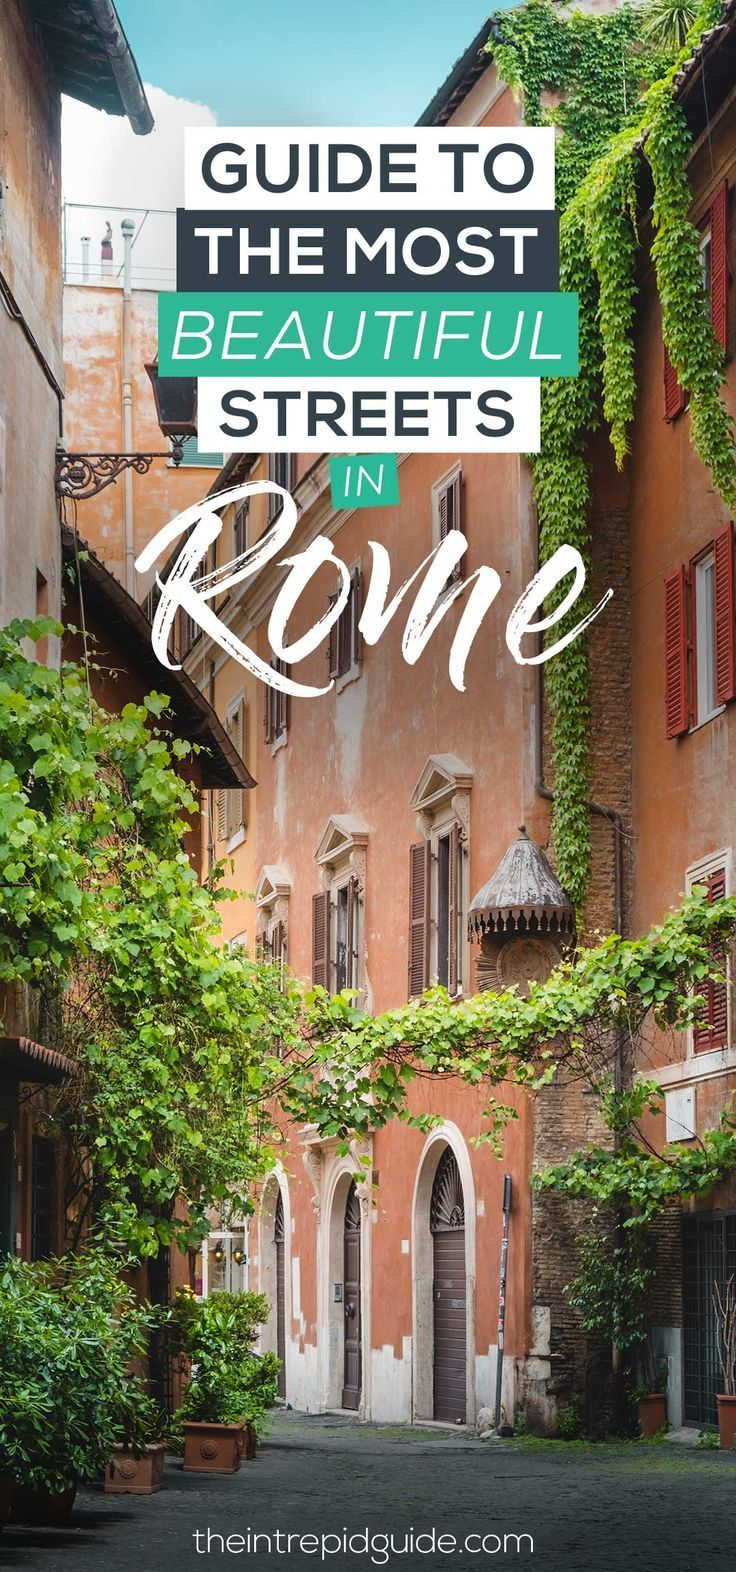 Trastevere Walking Tour: How to see Rome's Most Beautiful Streets